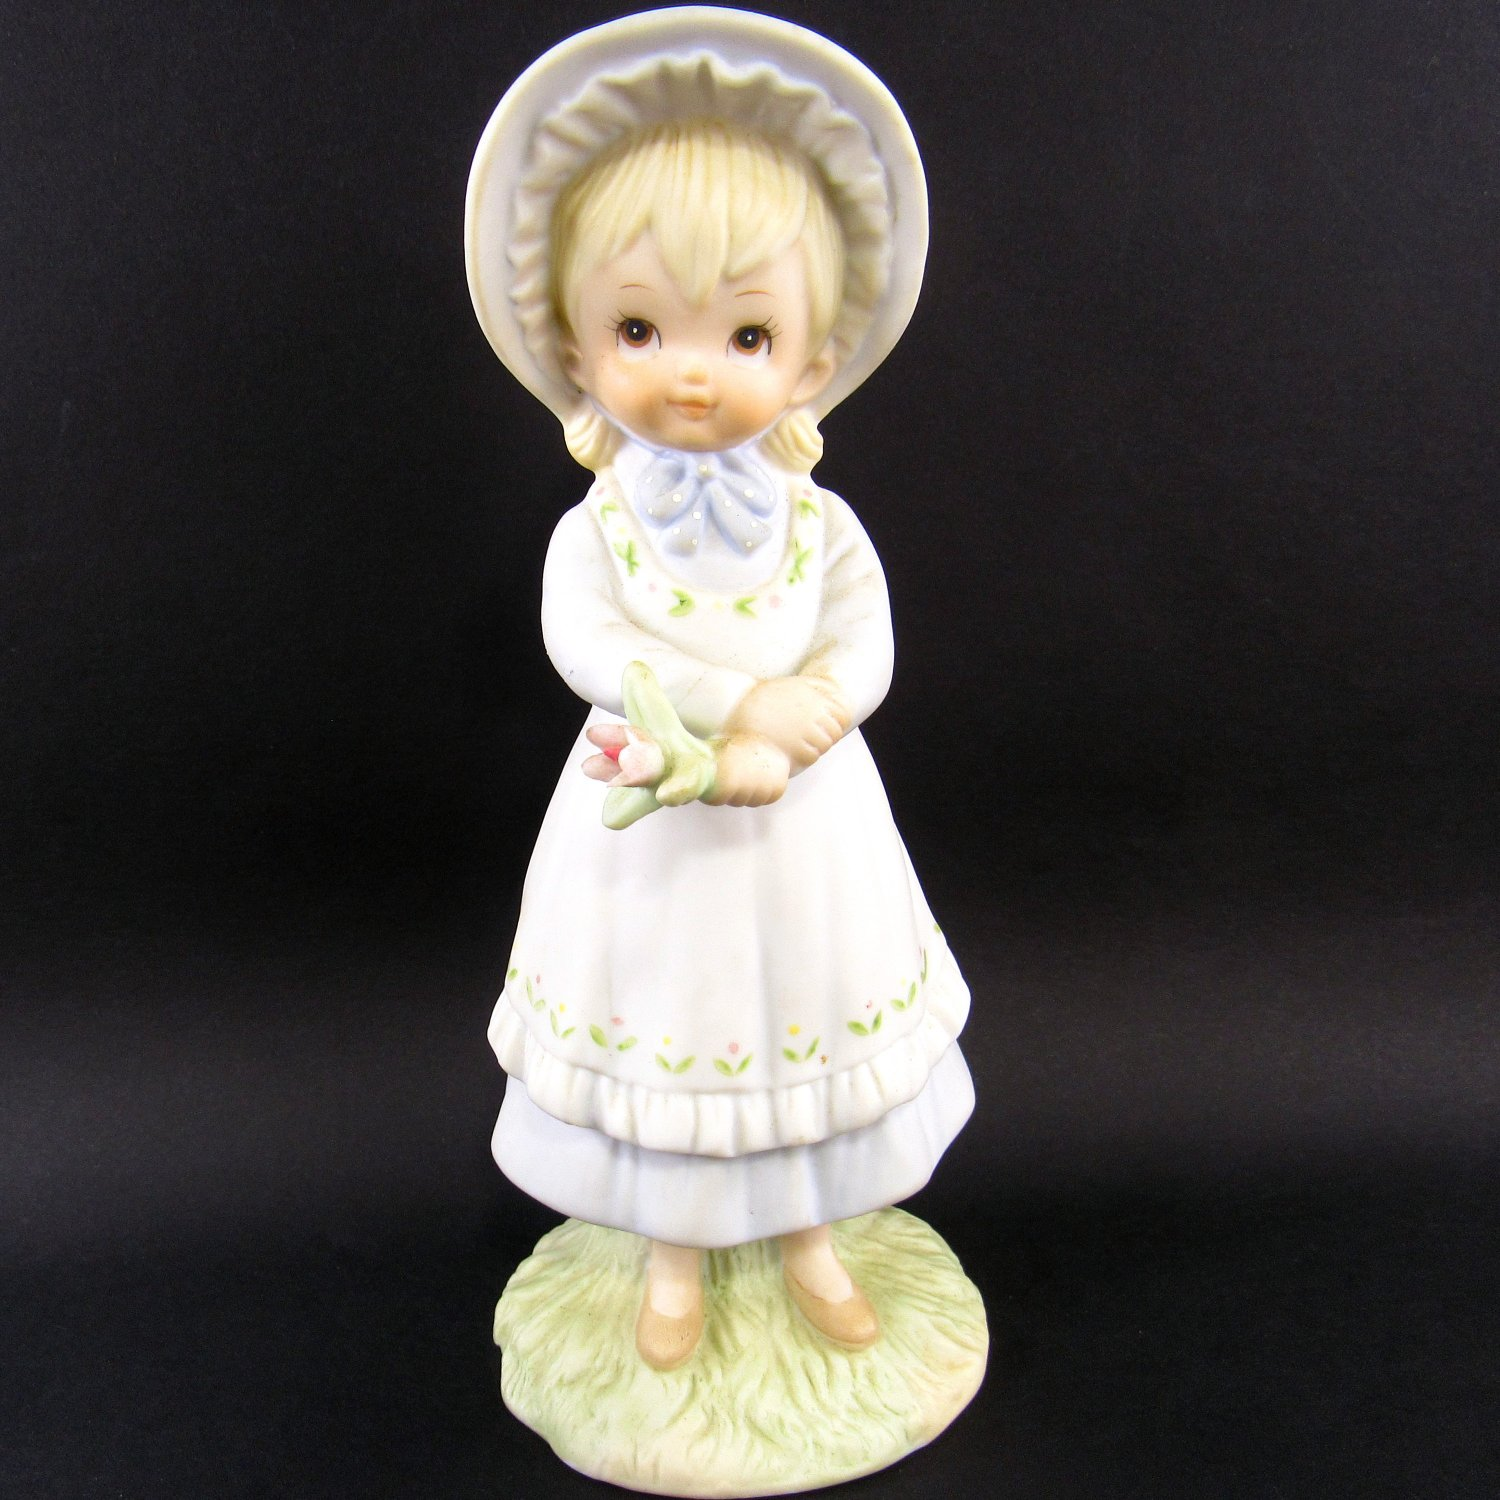 Lefton Figurine Warm Wishes and Flowers TWL-03854 Hand Painted 1980's 6 1/4 Inches Girl and Flowers